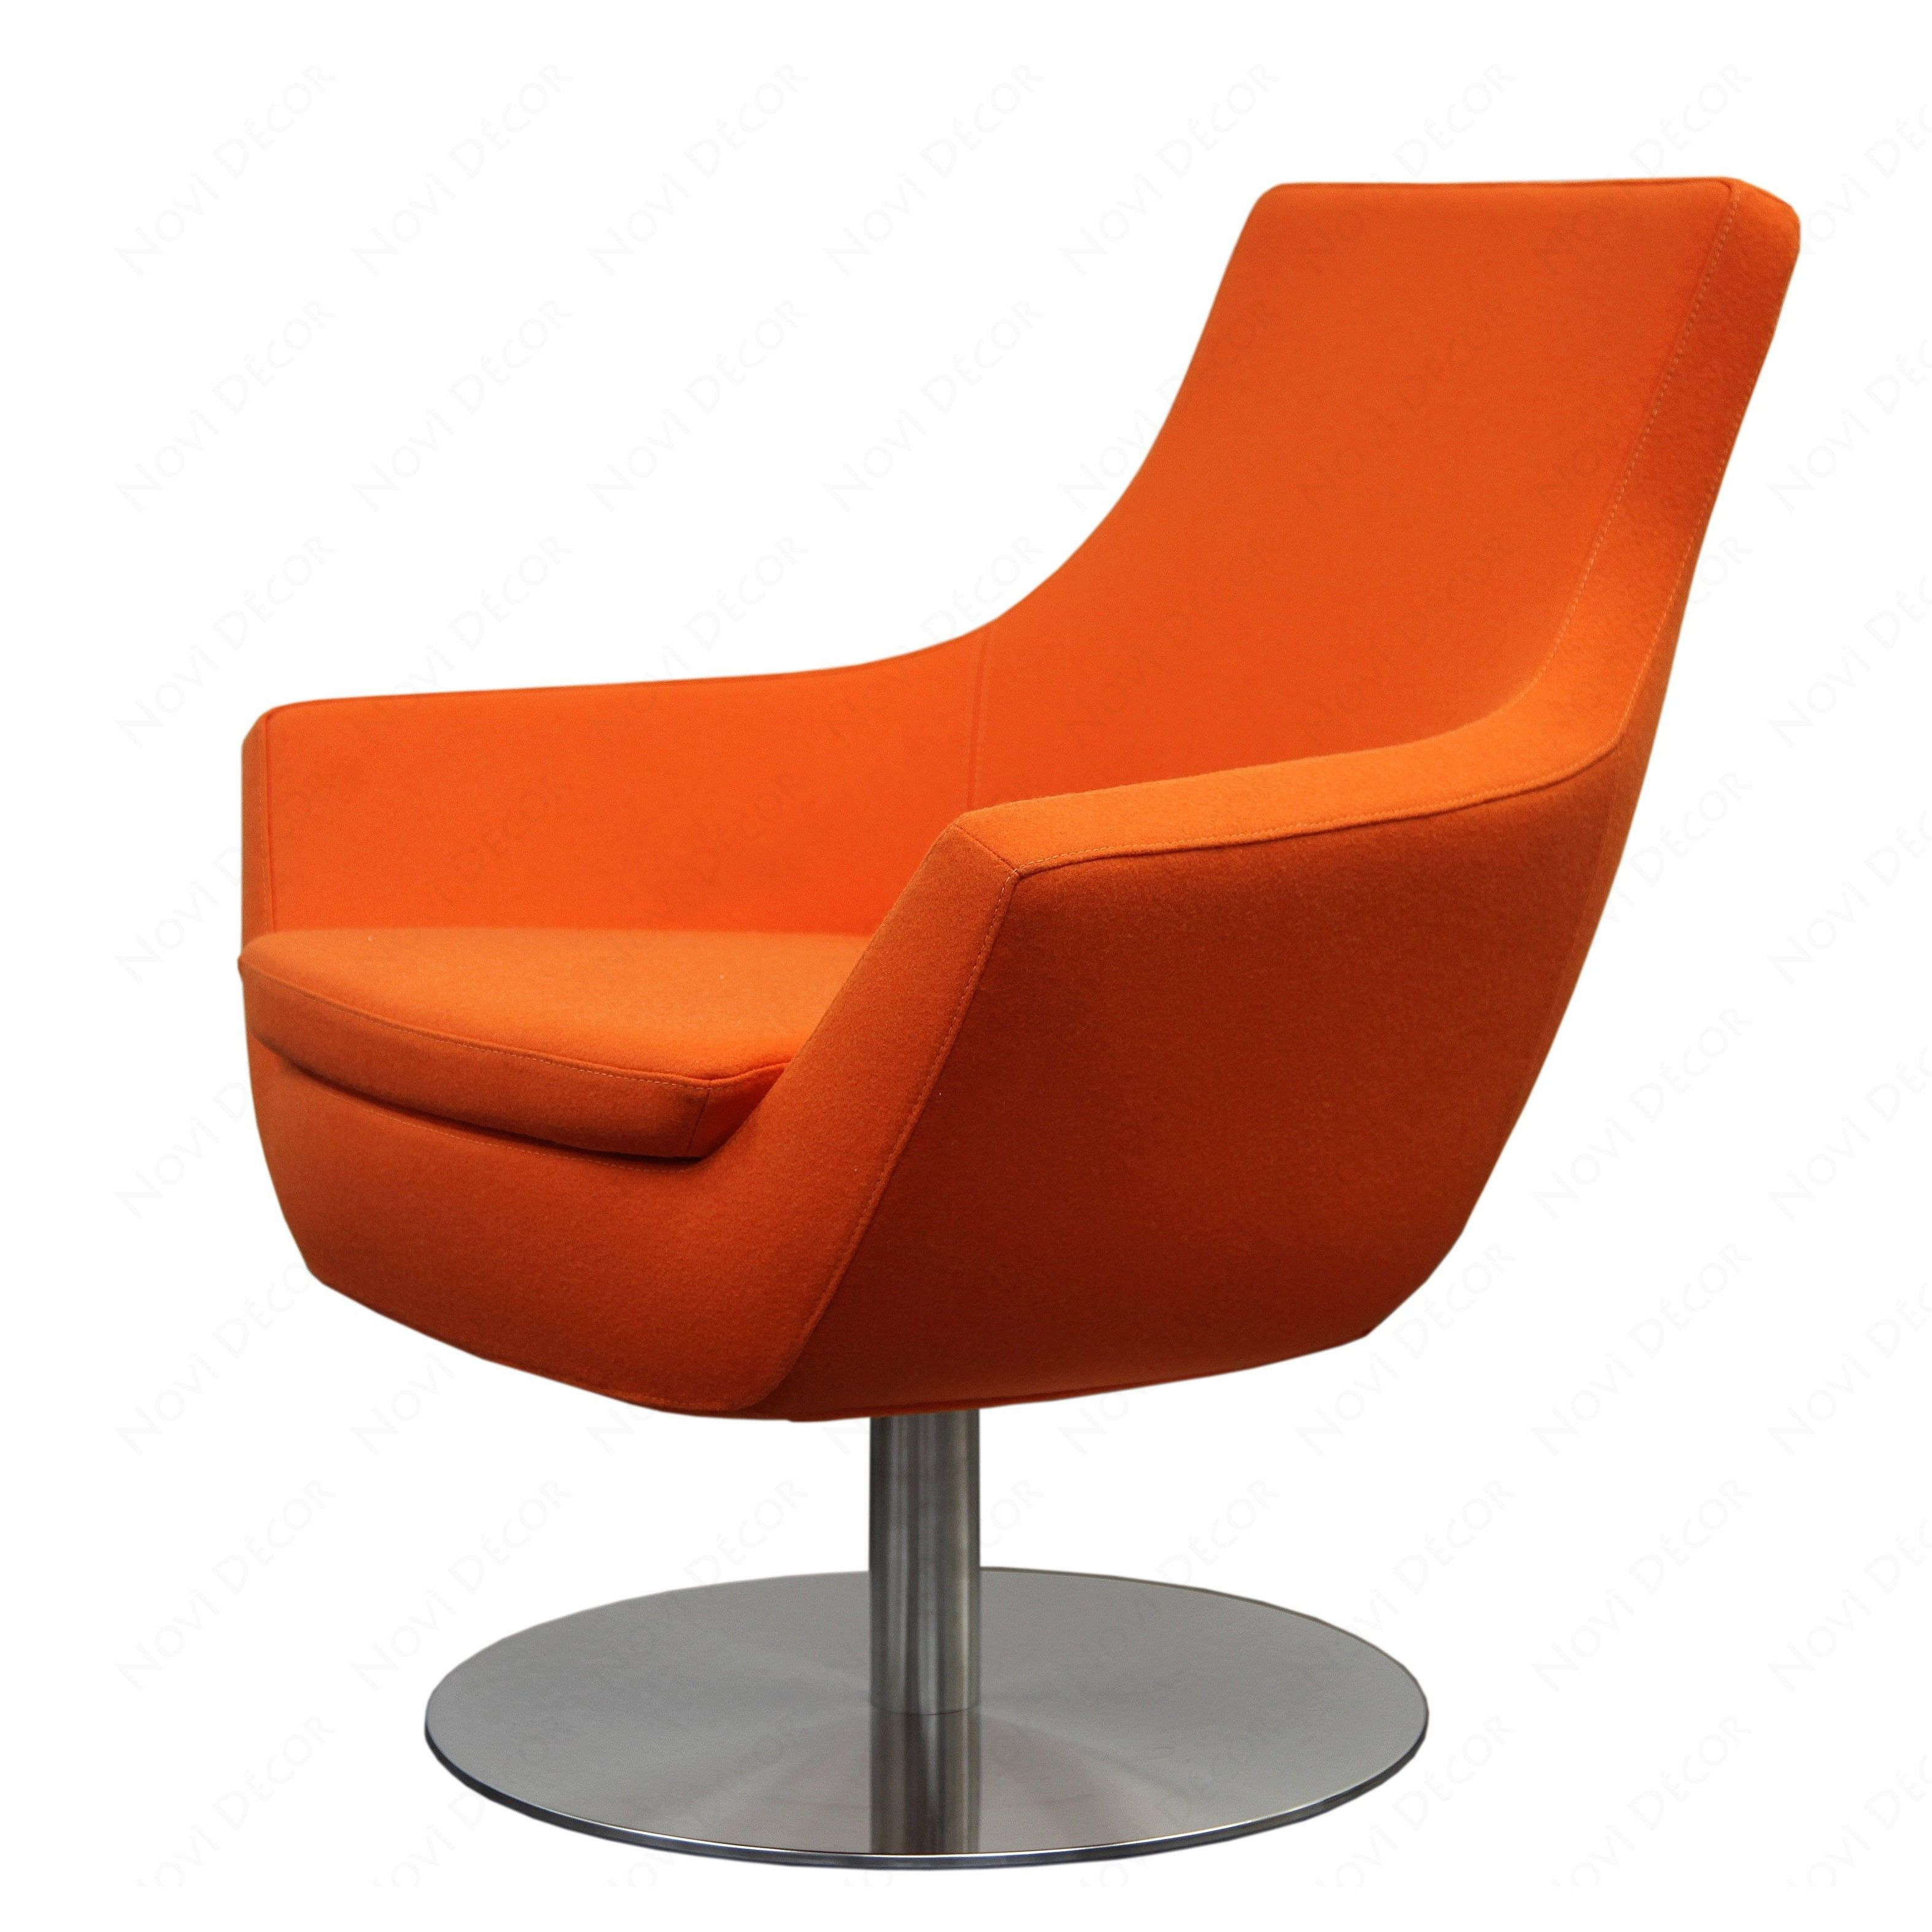 Furniture accessories orange swivel chairs for living - Swivel chair living room furniture ...